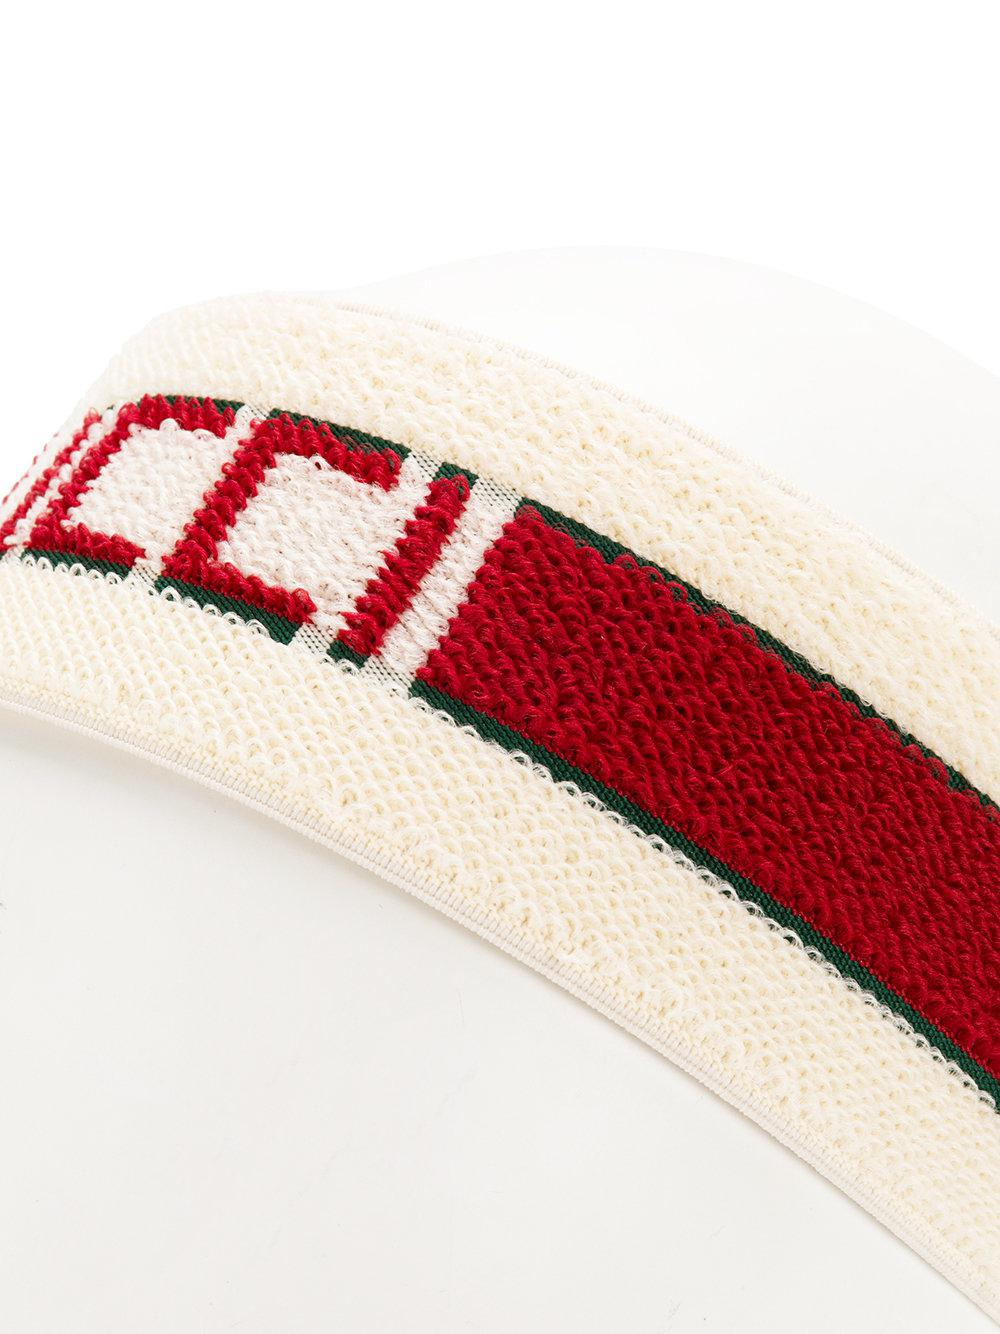 Gucci Logo Stripe Headband in White for Men - Lyst 143a37fdcfb